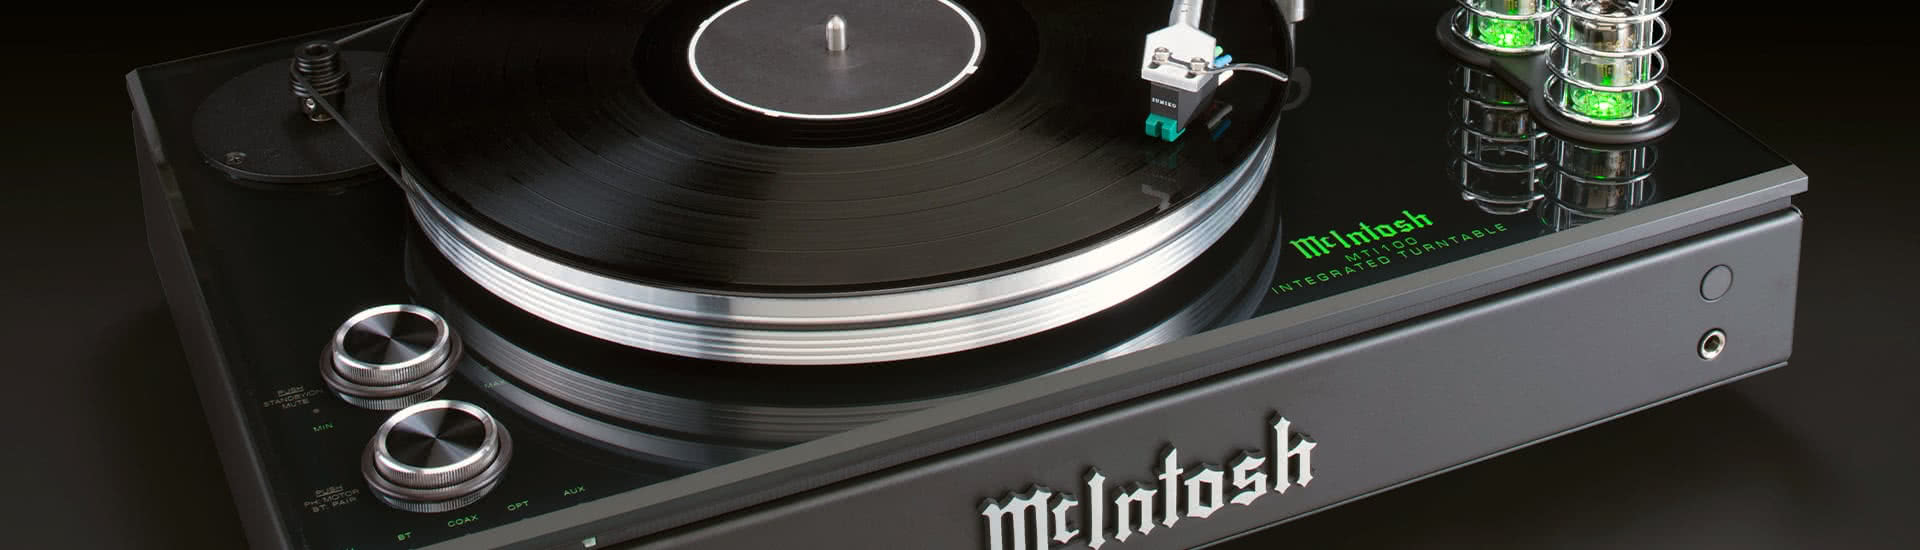 Review: McIntosh MTI100 Integrated Turntable